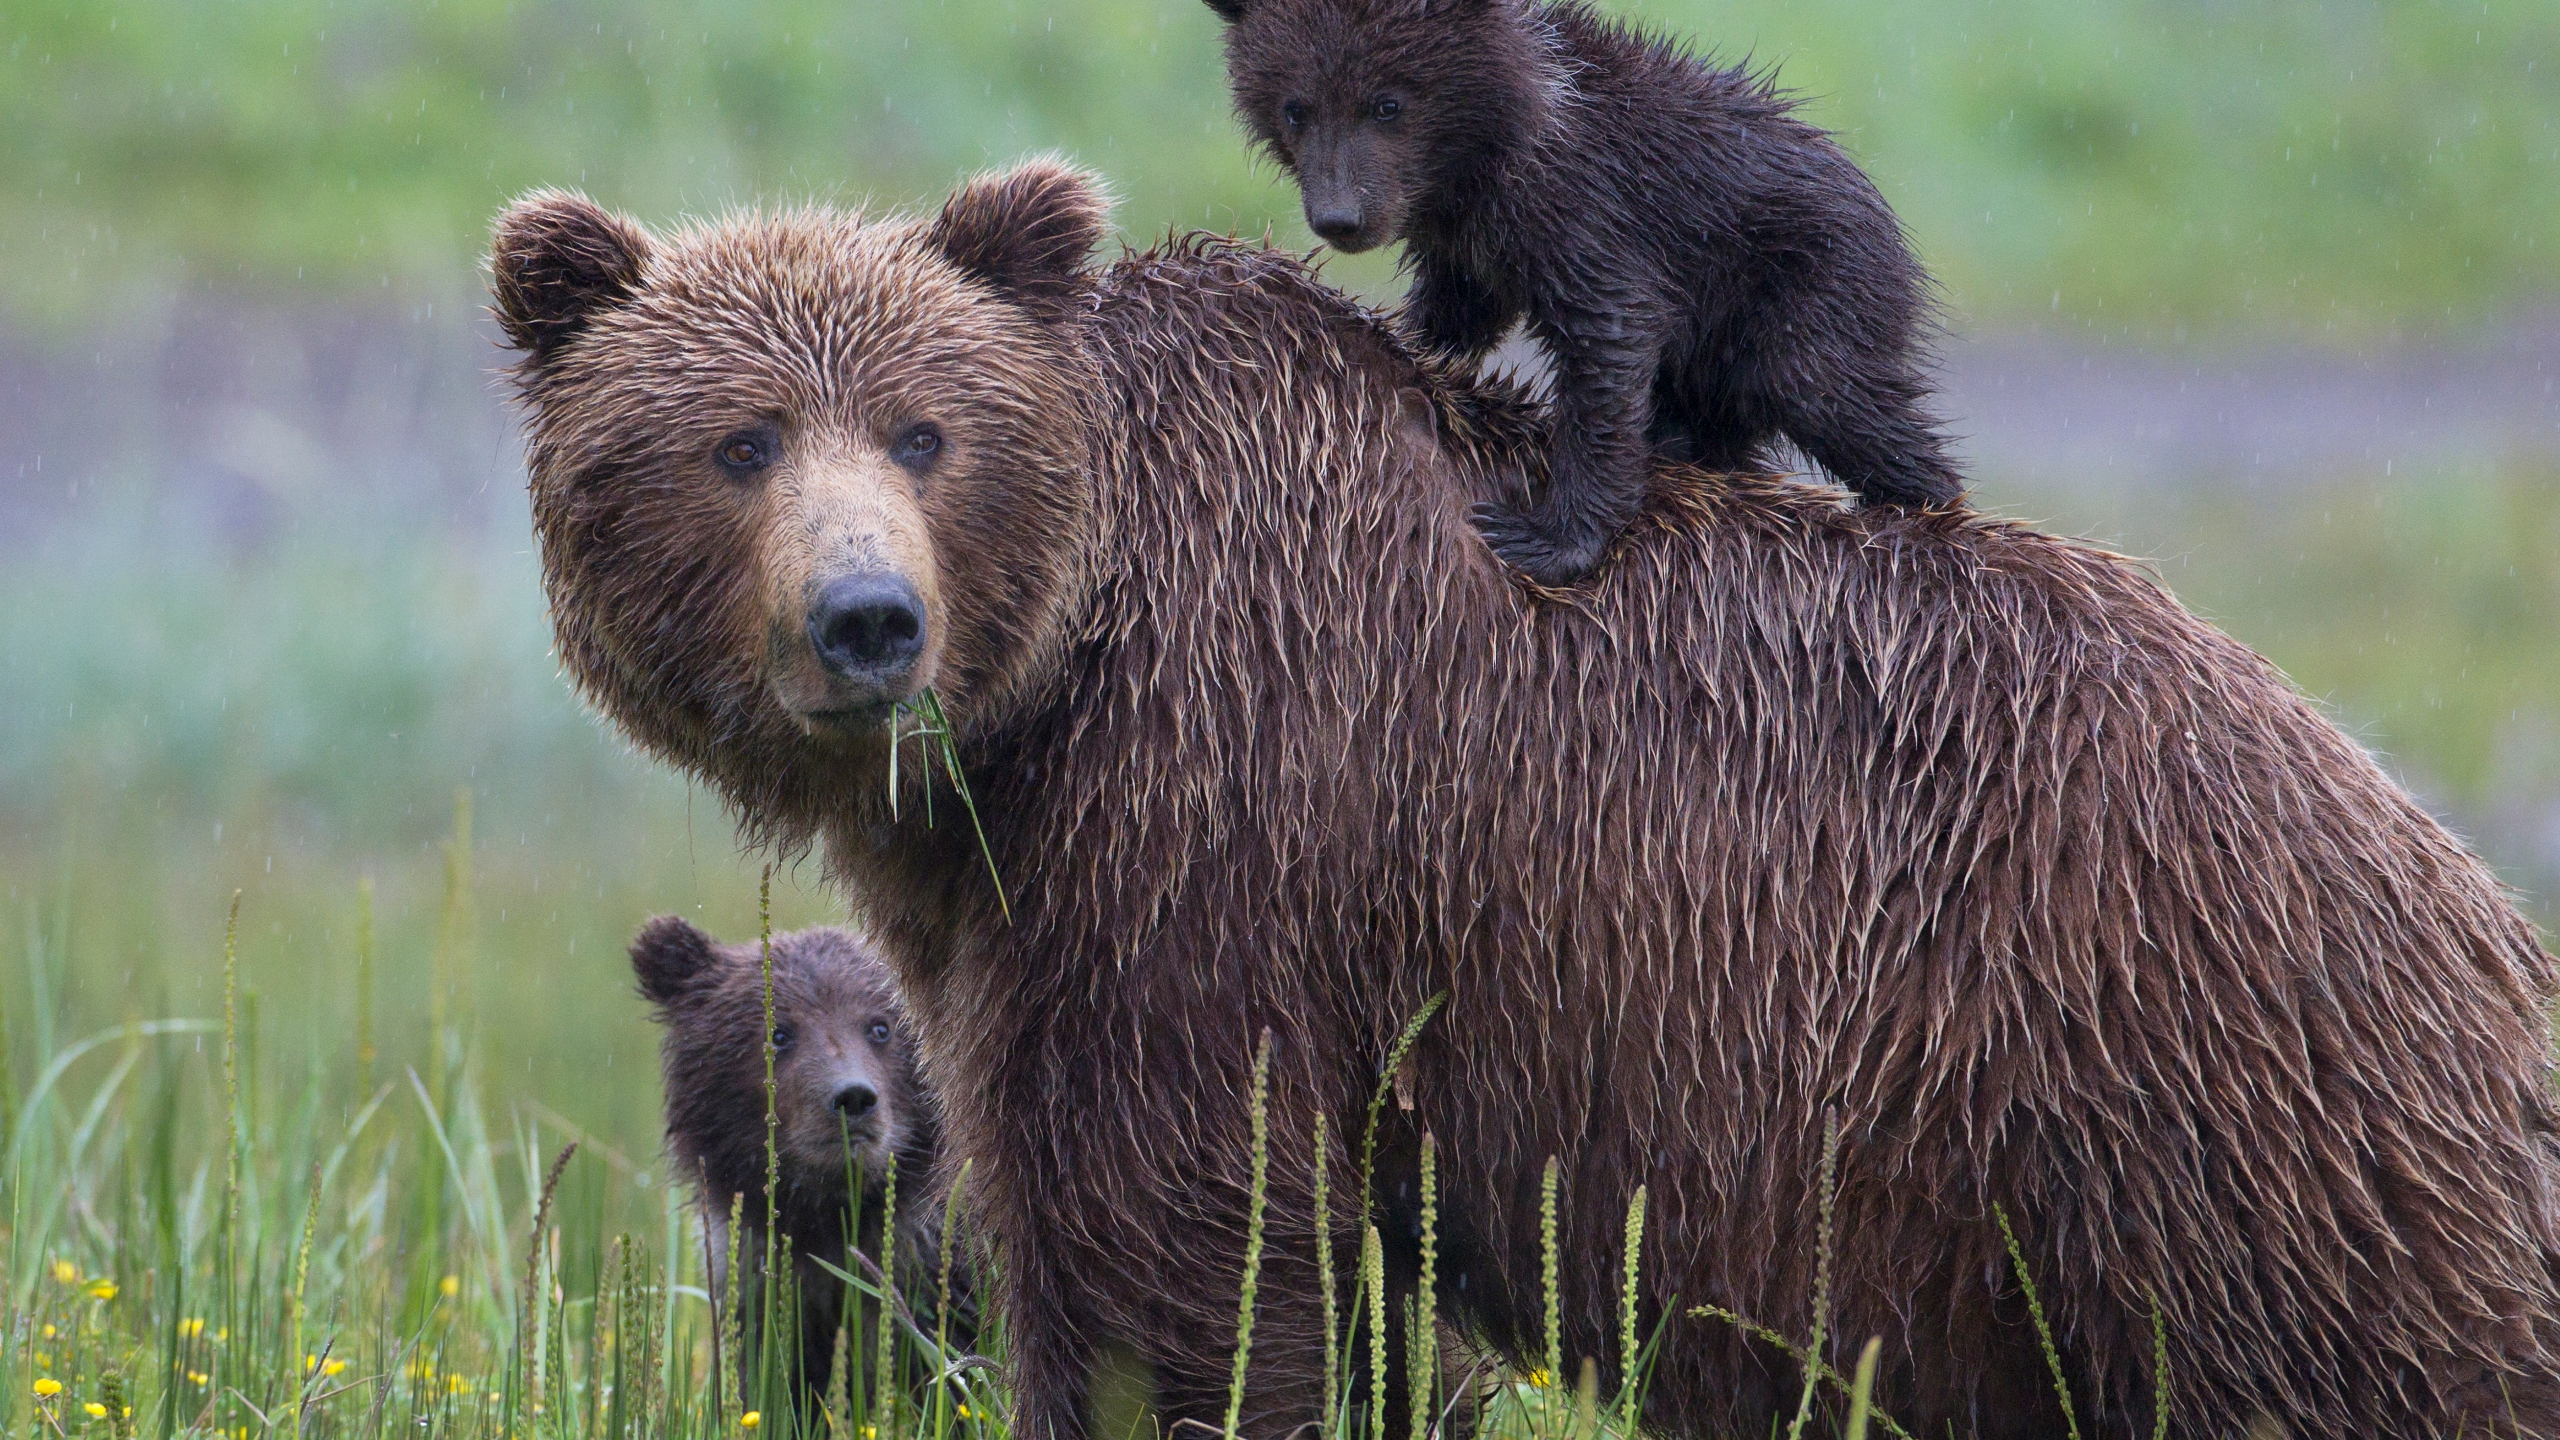 A bear and two cubs are seen in a file photo. (Credit: iStock/Getty Images Plus)